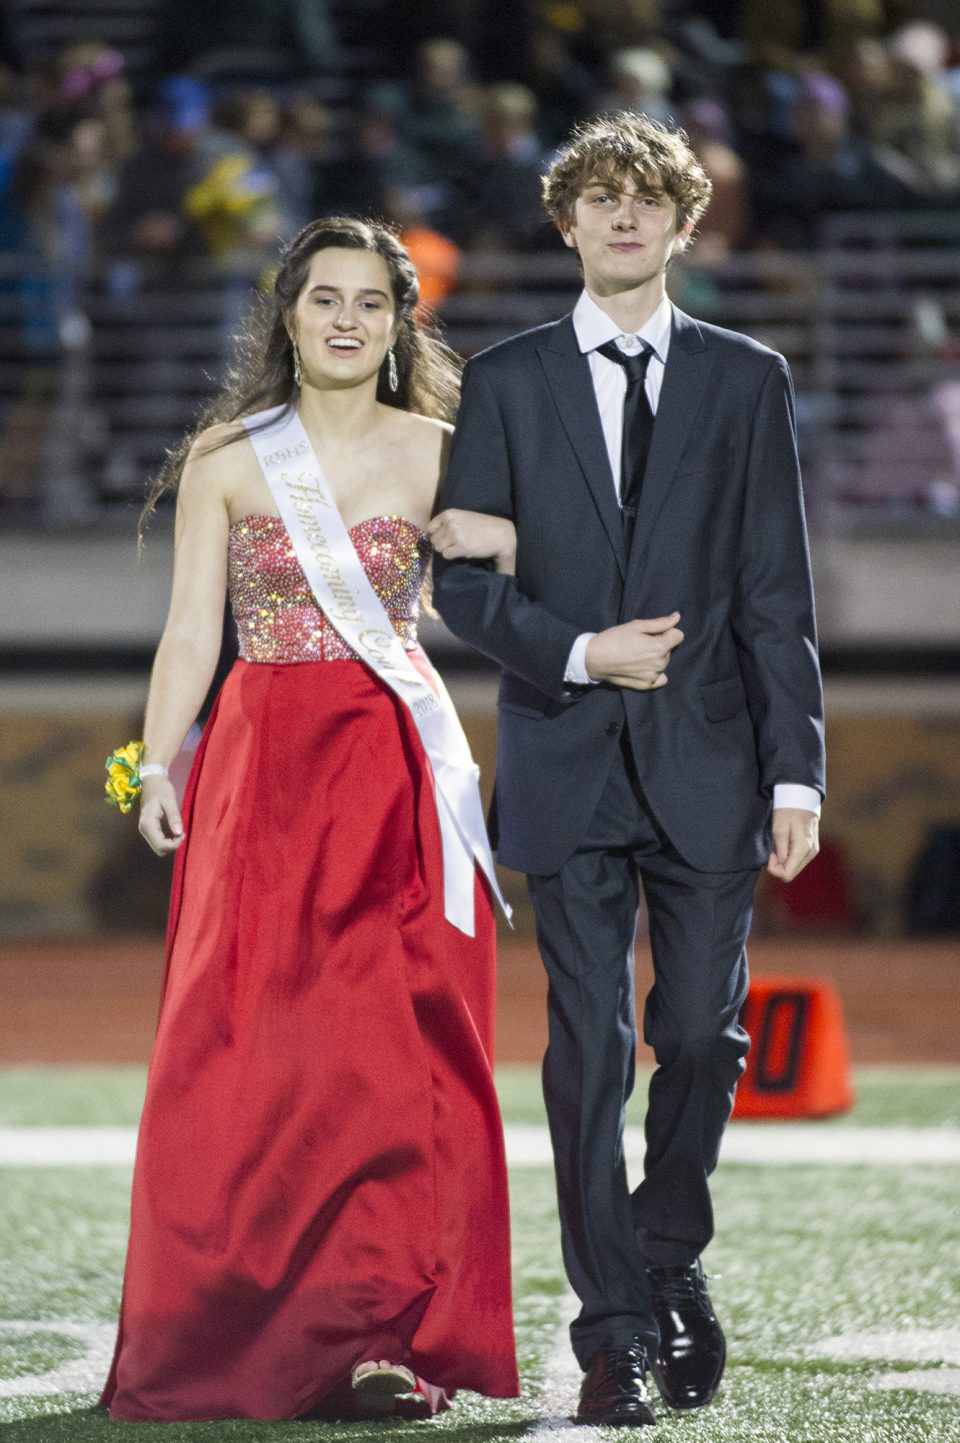 Homecoming queen candidate Maddi Butler and escort Keegan Adkins. Photo by Maya Bell.